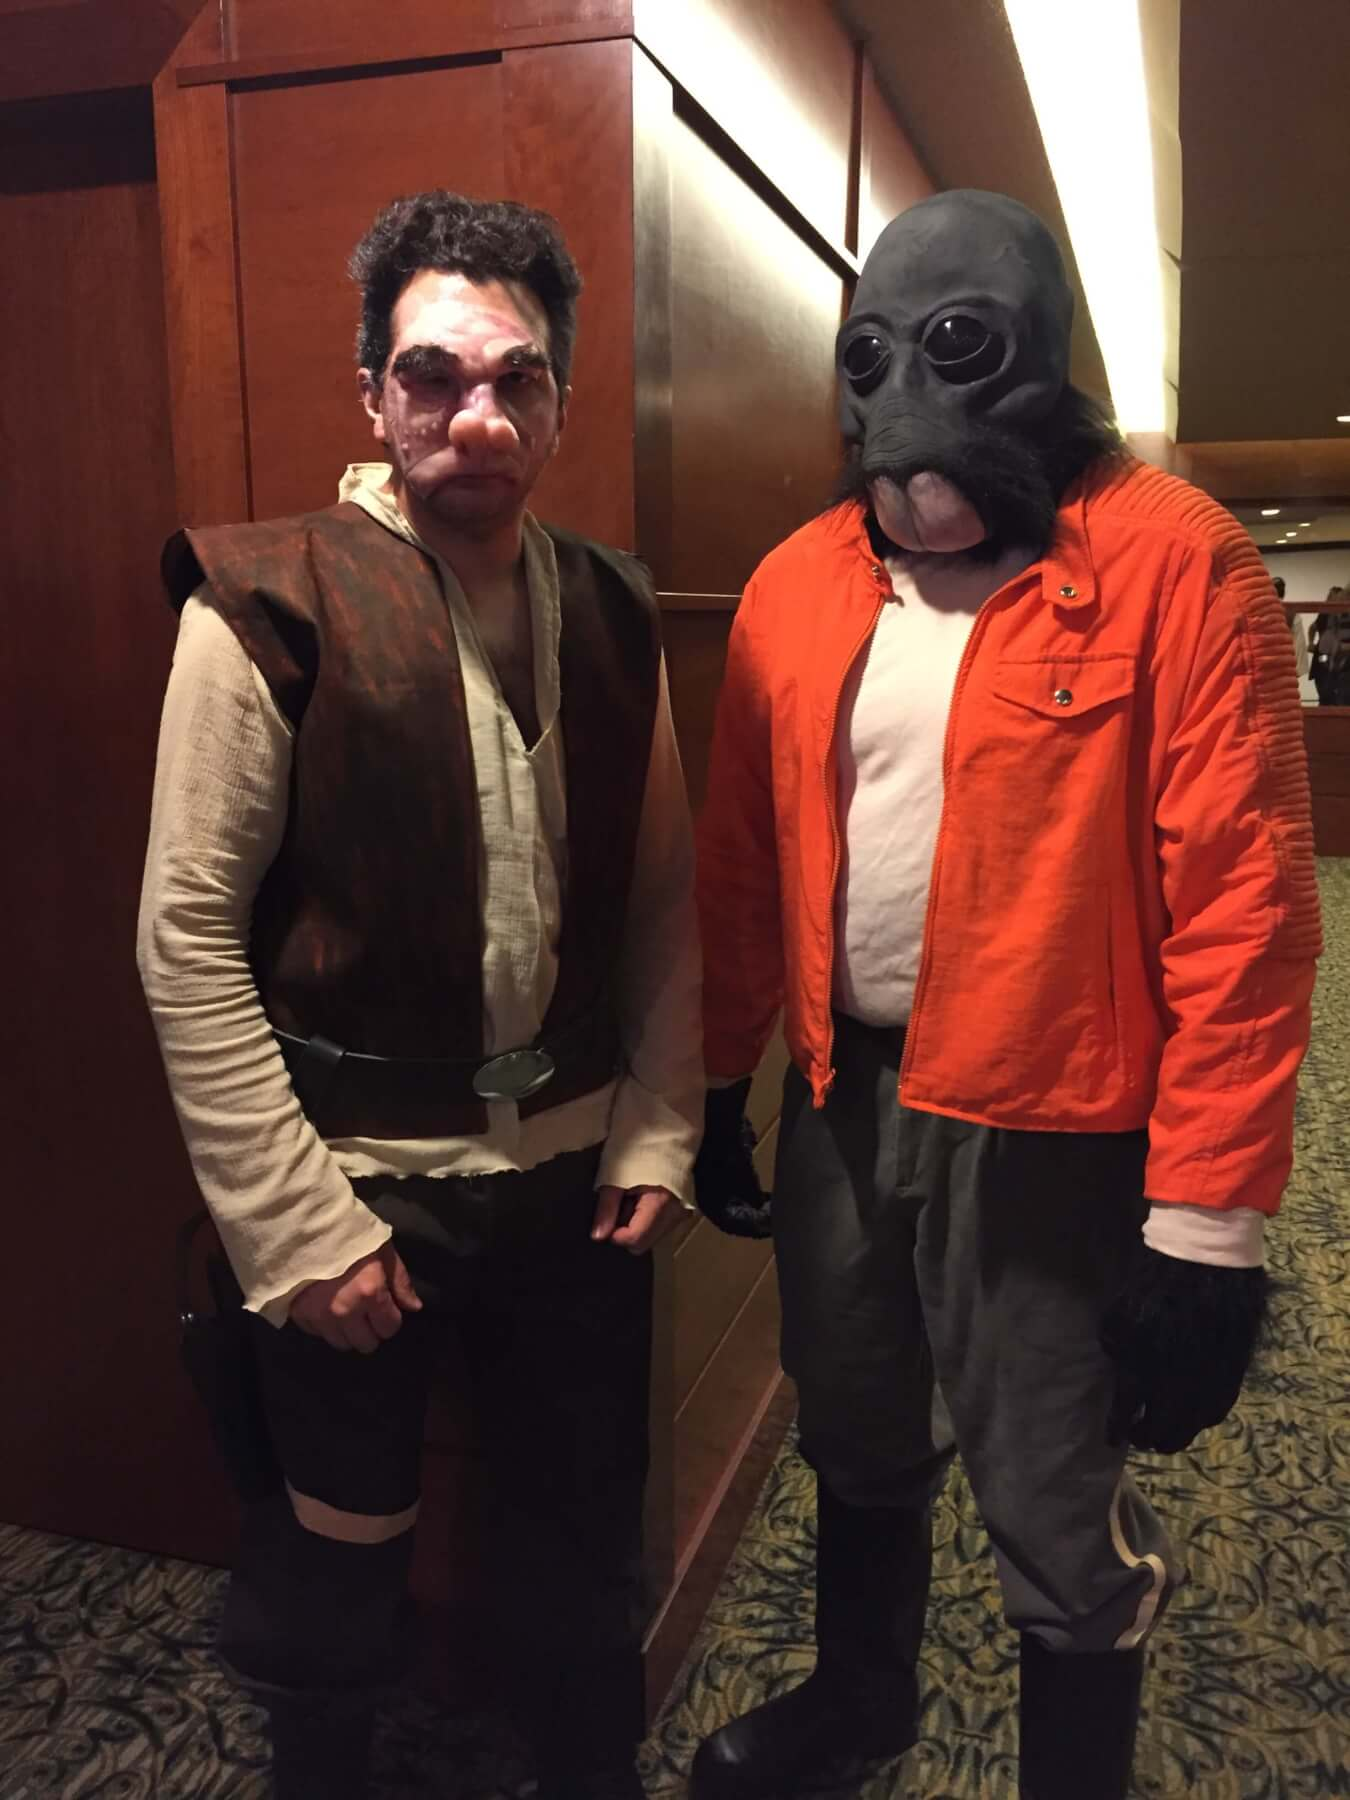 Doctor Evazan and Ponda Baba